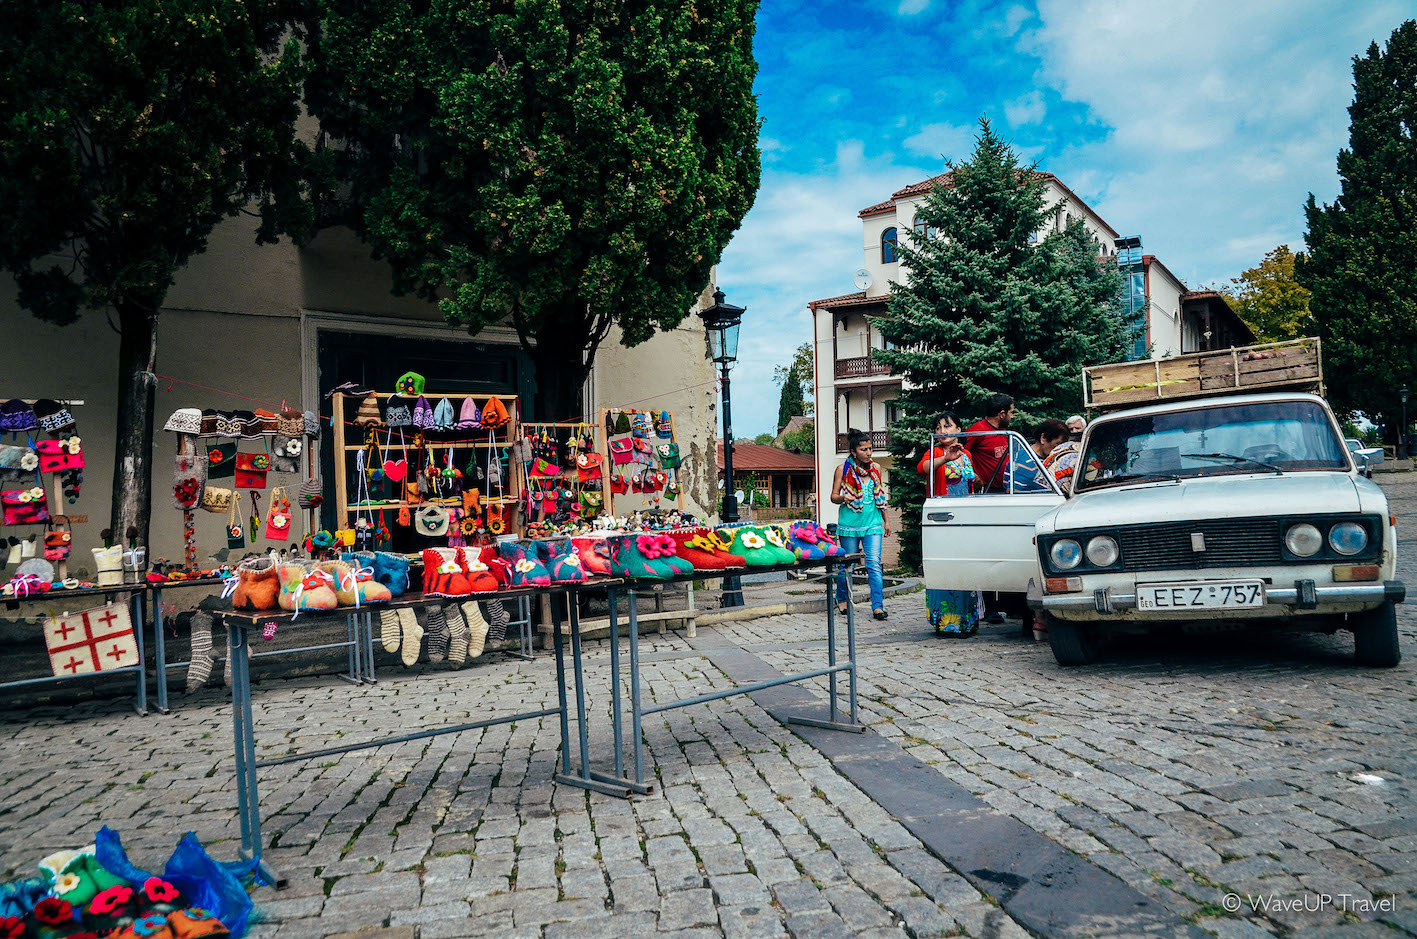 Georgia tours: markets, one of the top reasons to visit now